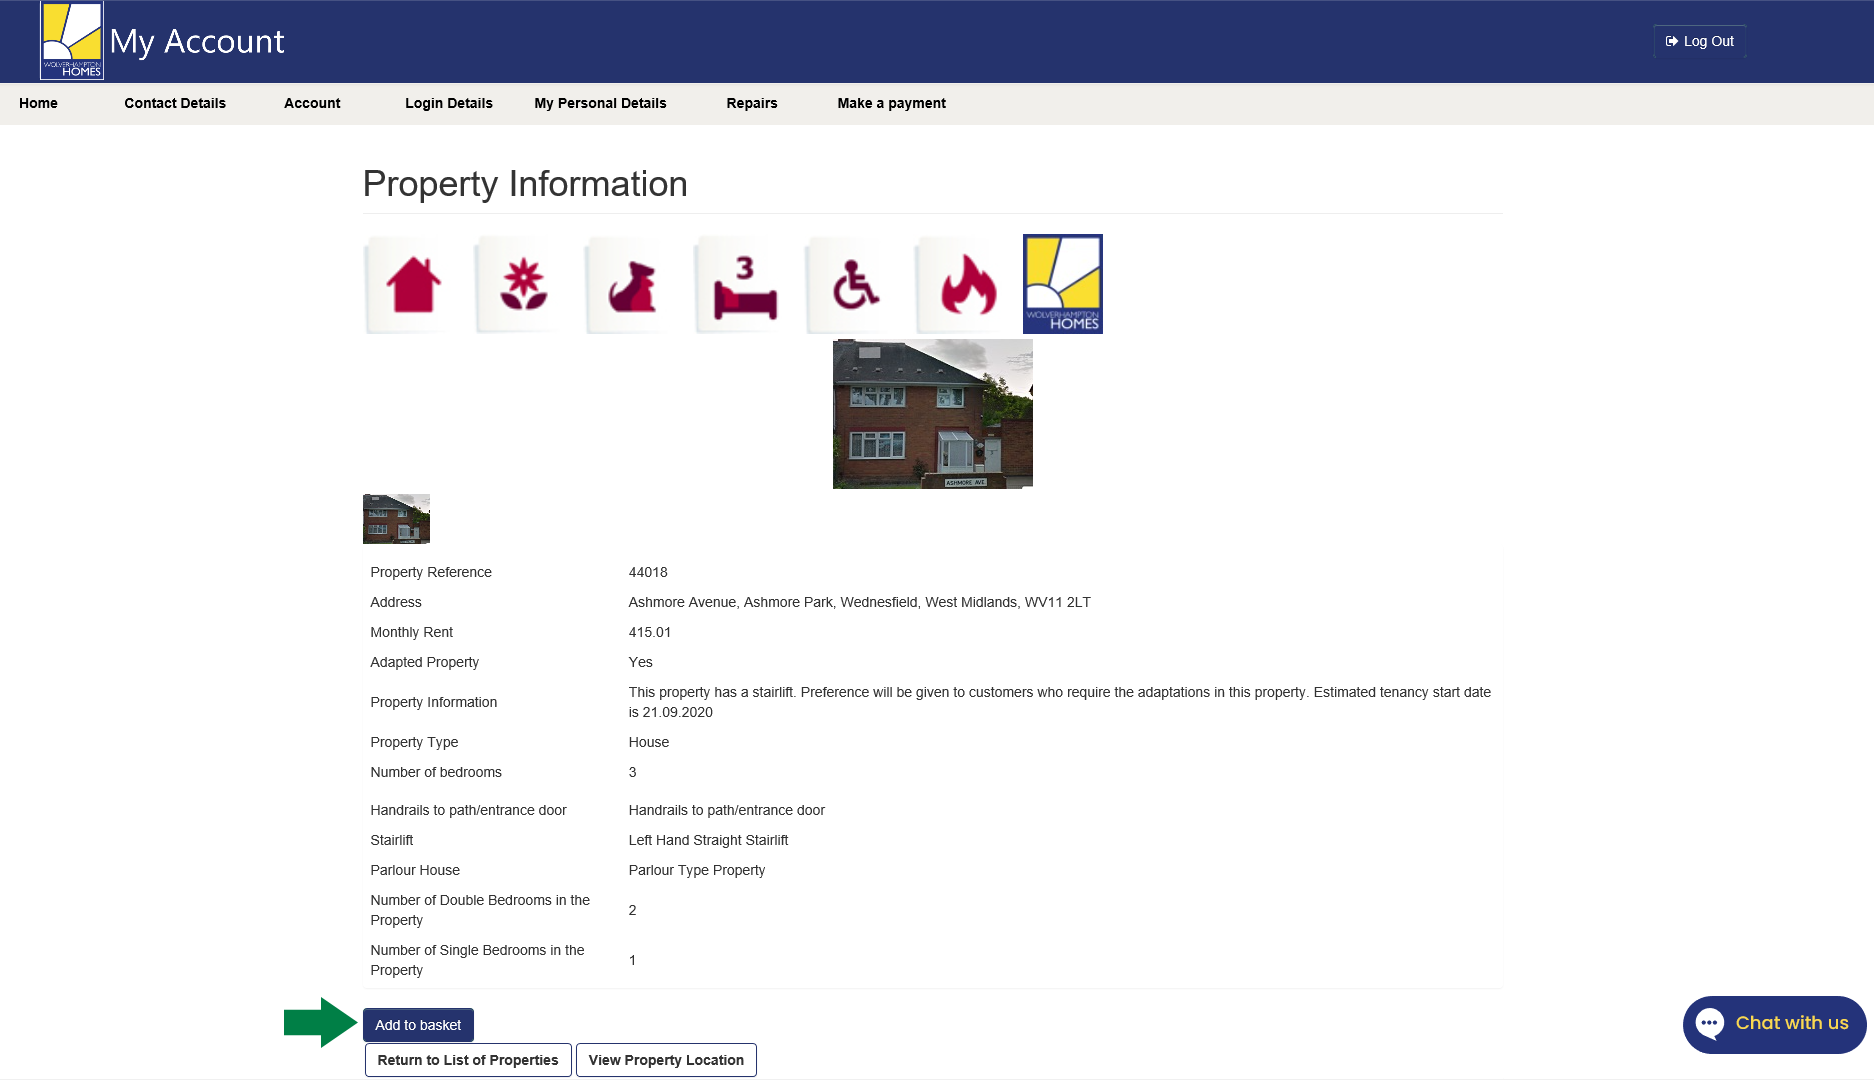 Screen shot of property information page